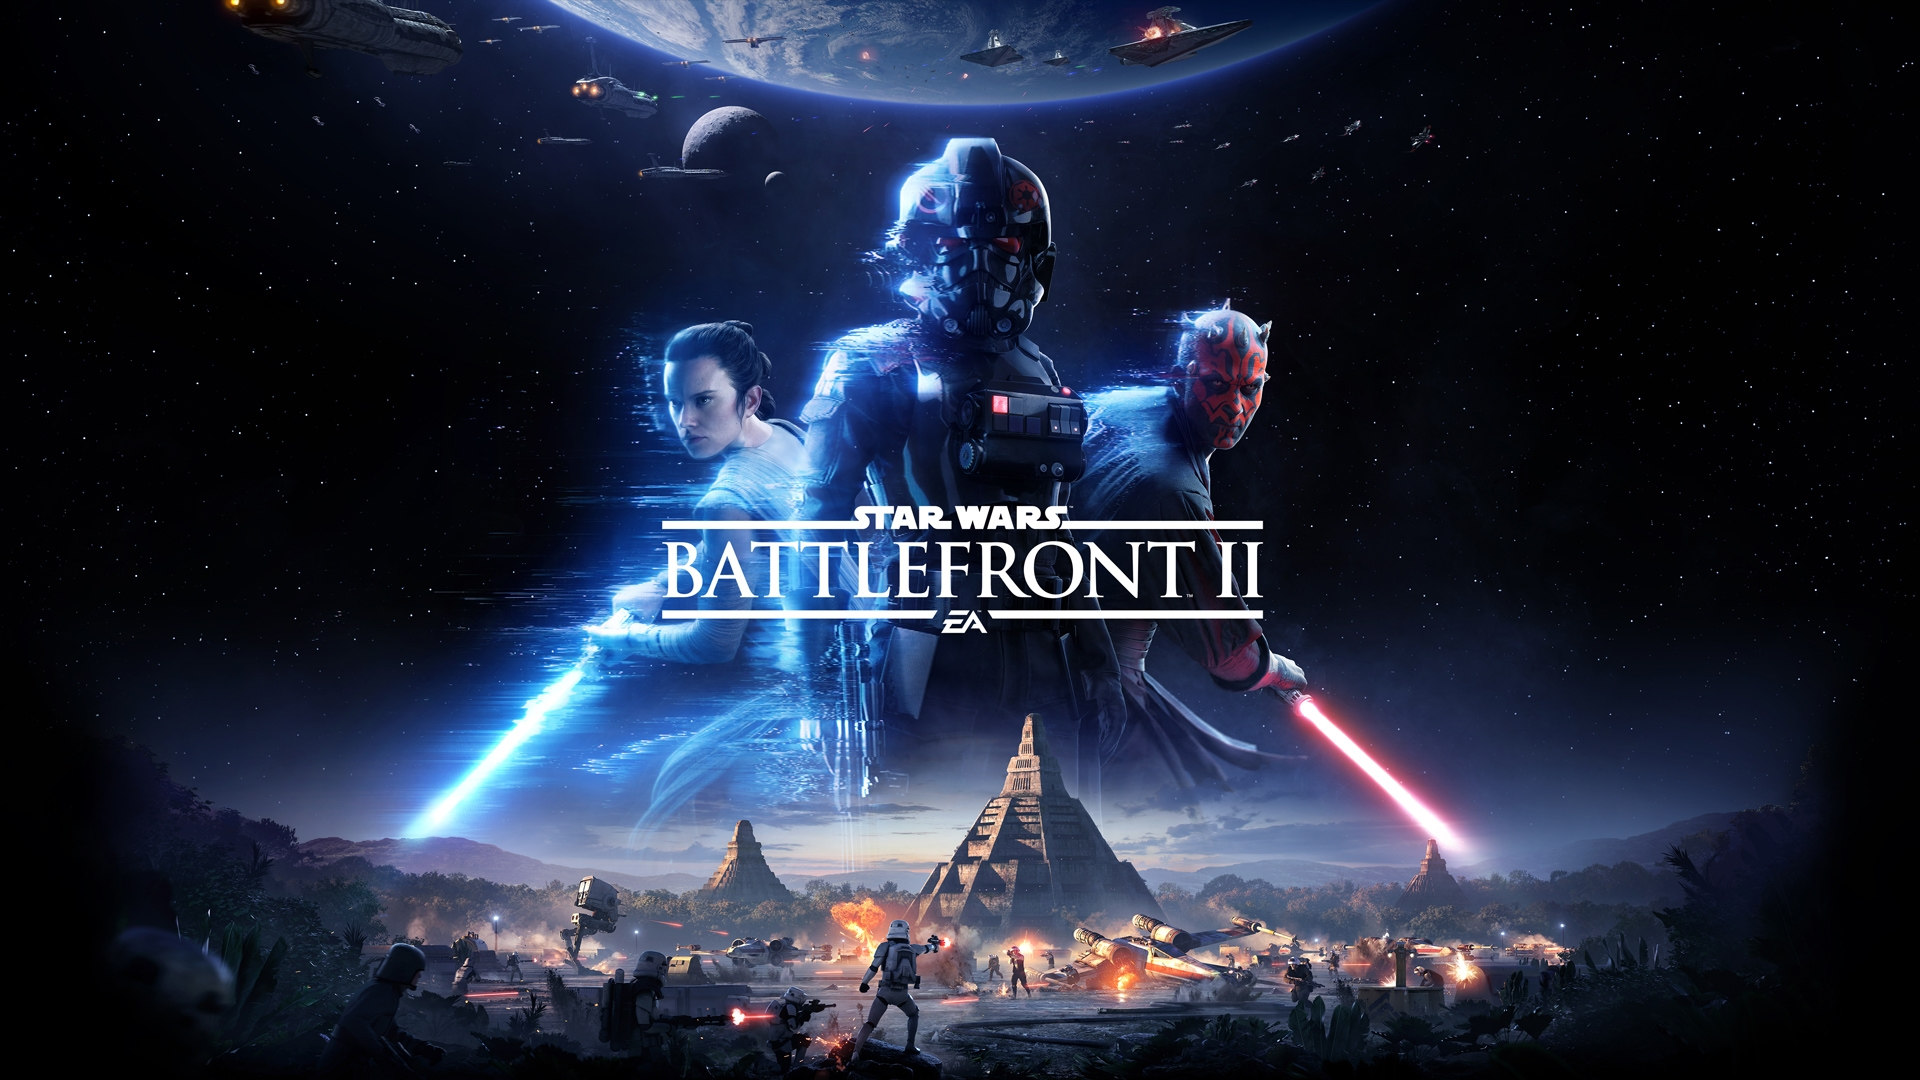 There's A New Story Trailer for Star Wars Battlefront II